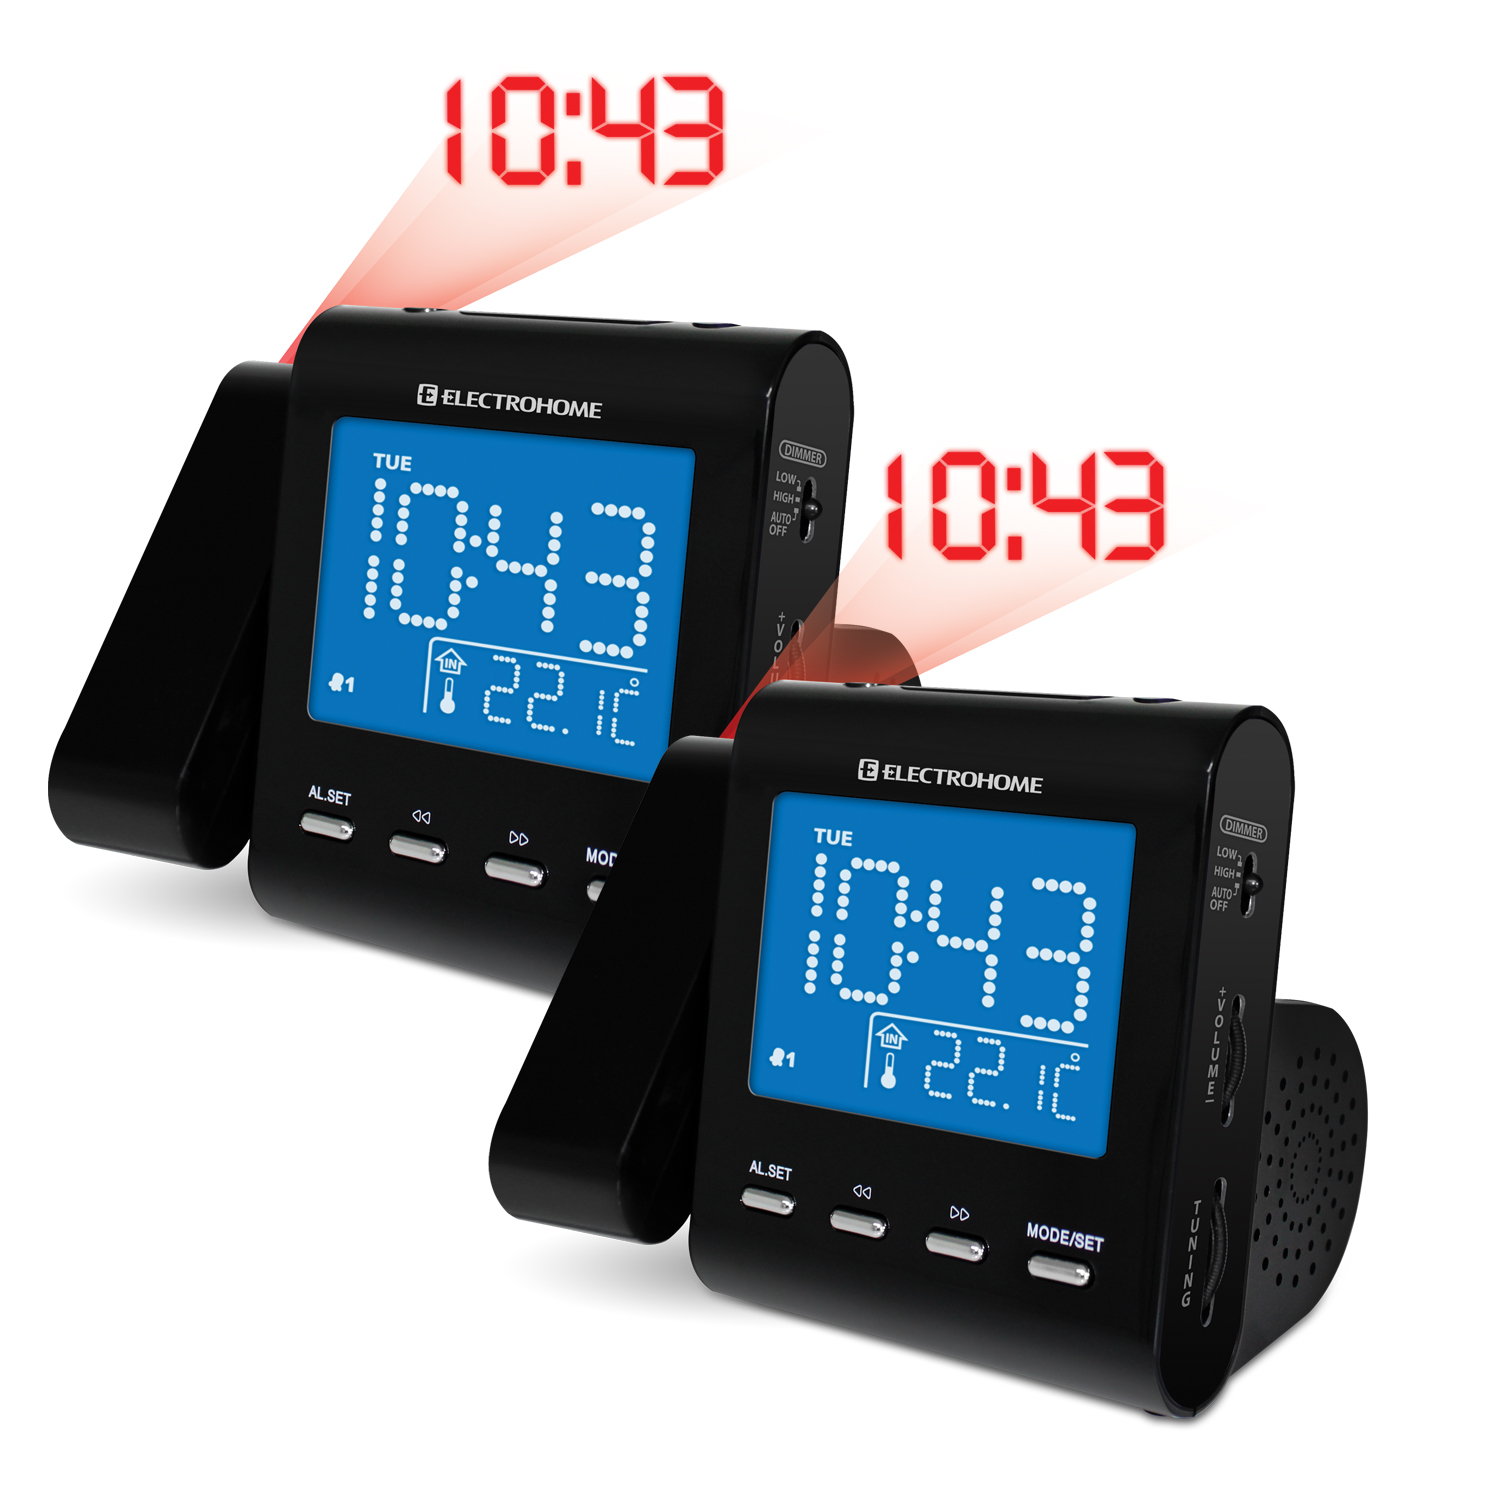 Electrohome EAAC600 AM/FM Projection Clock Radio with Dual Alarm - 2 Clock Radios Included at Sears.com